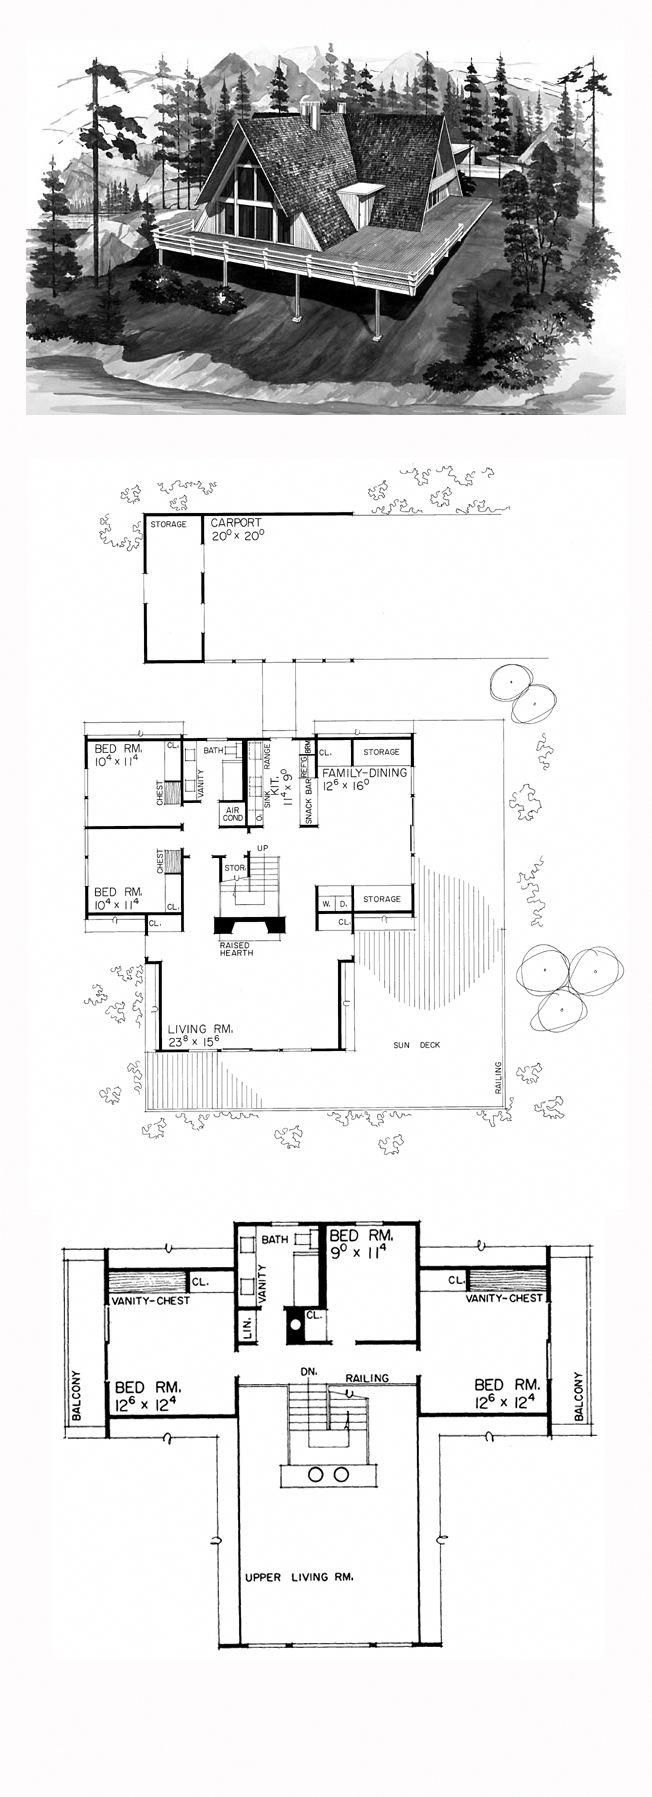 A Frame House Plan 90233 Total Living Area 2190 Sq Ft 5 Bedrooms And 2 5 Bathrooms Aframe A Framehouse A Frame House Plans A Frame House House Plans